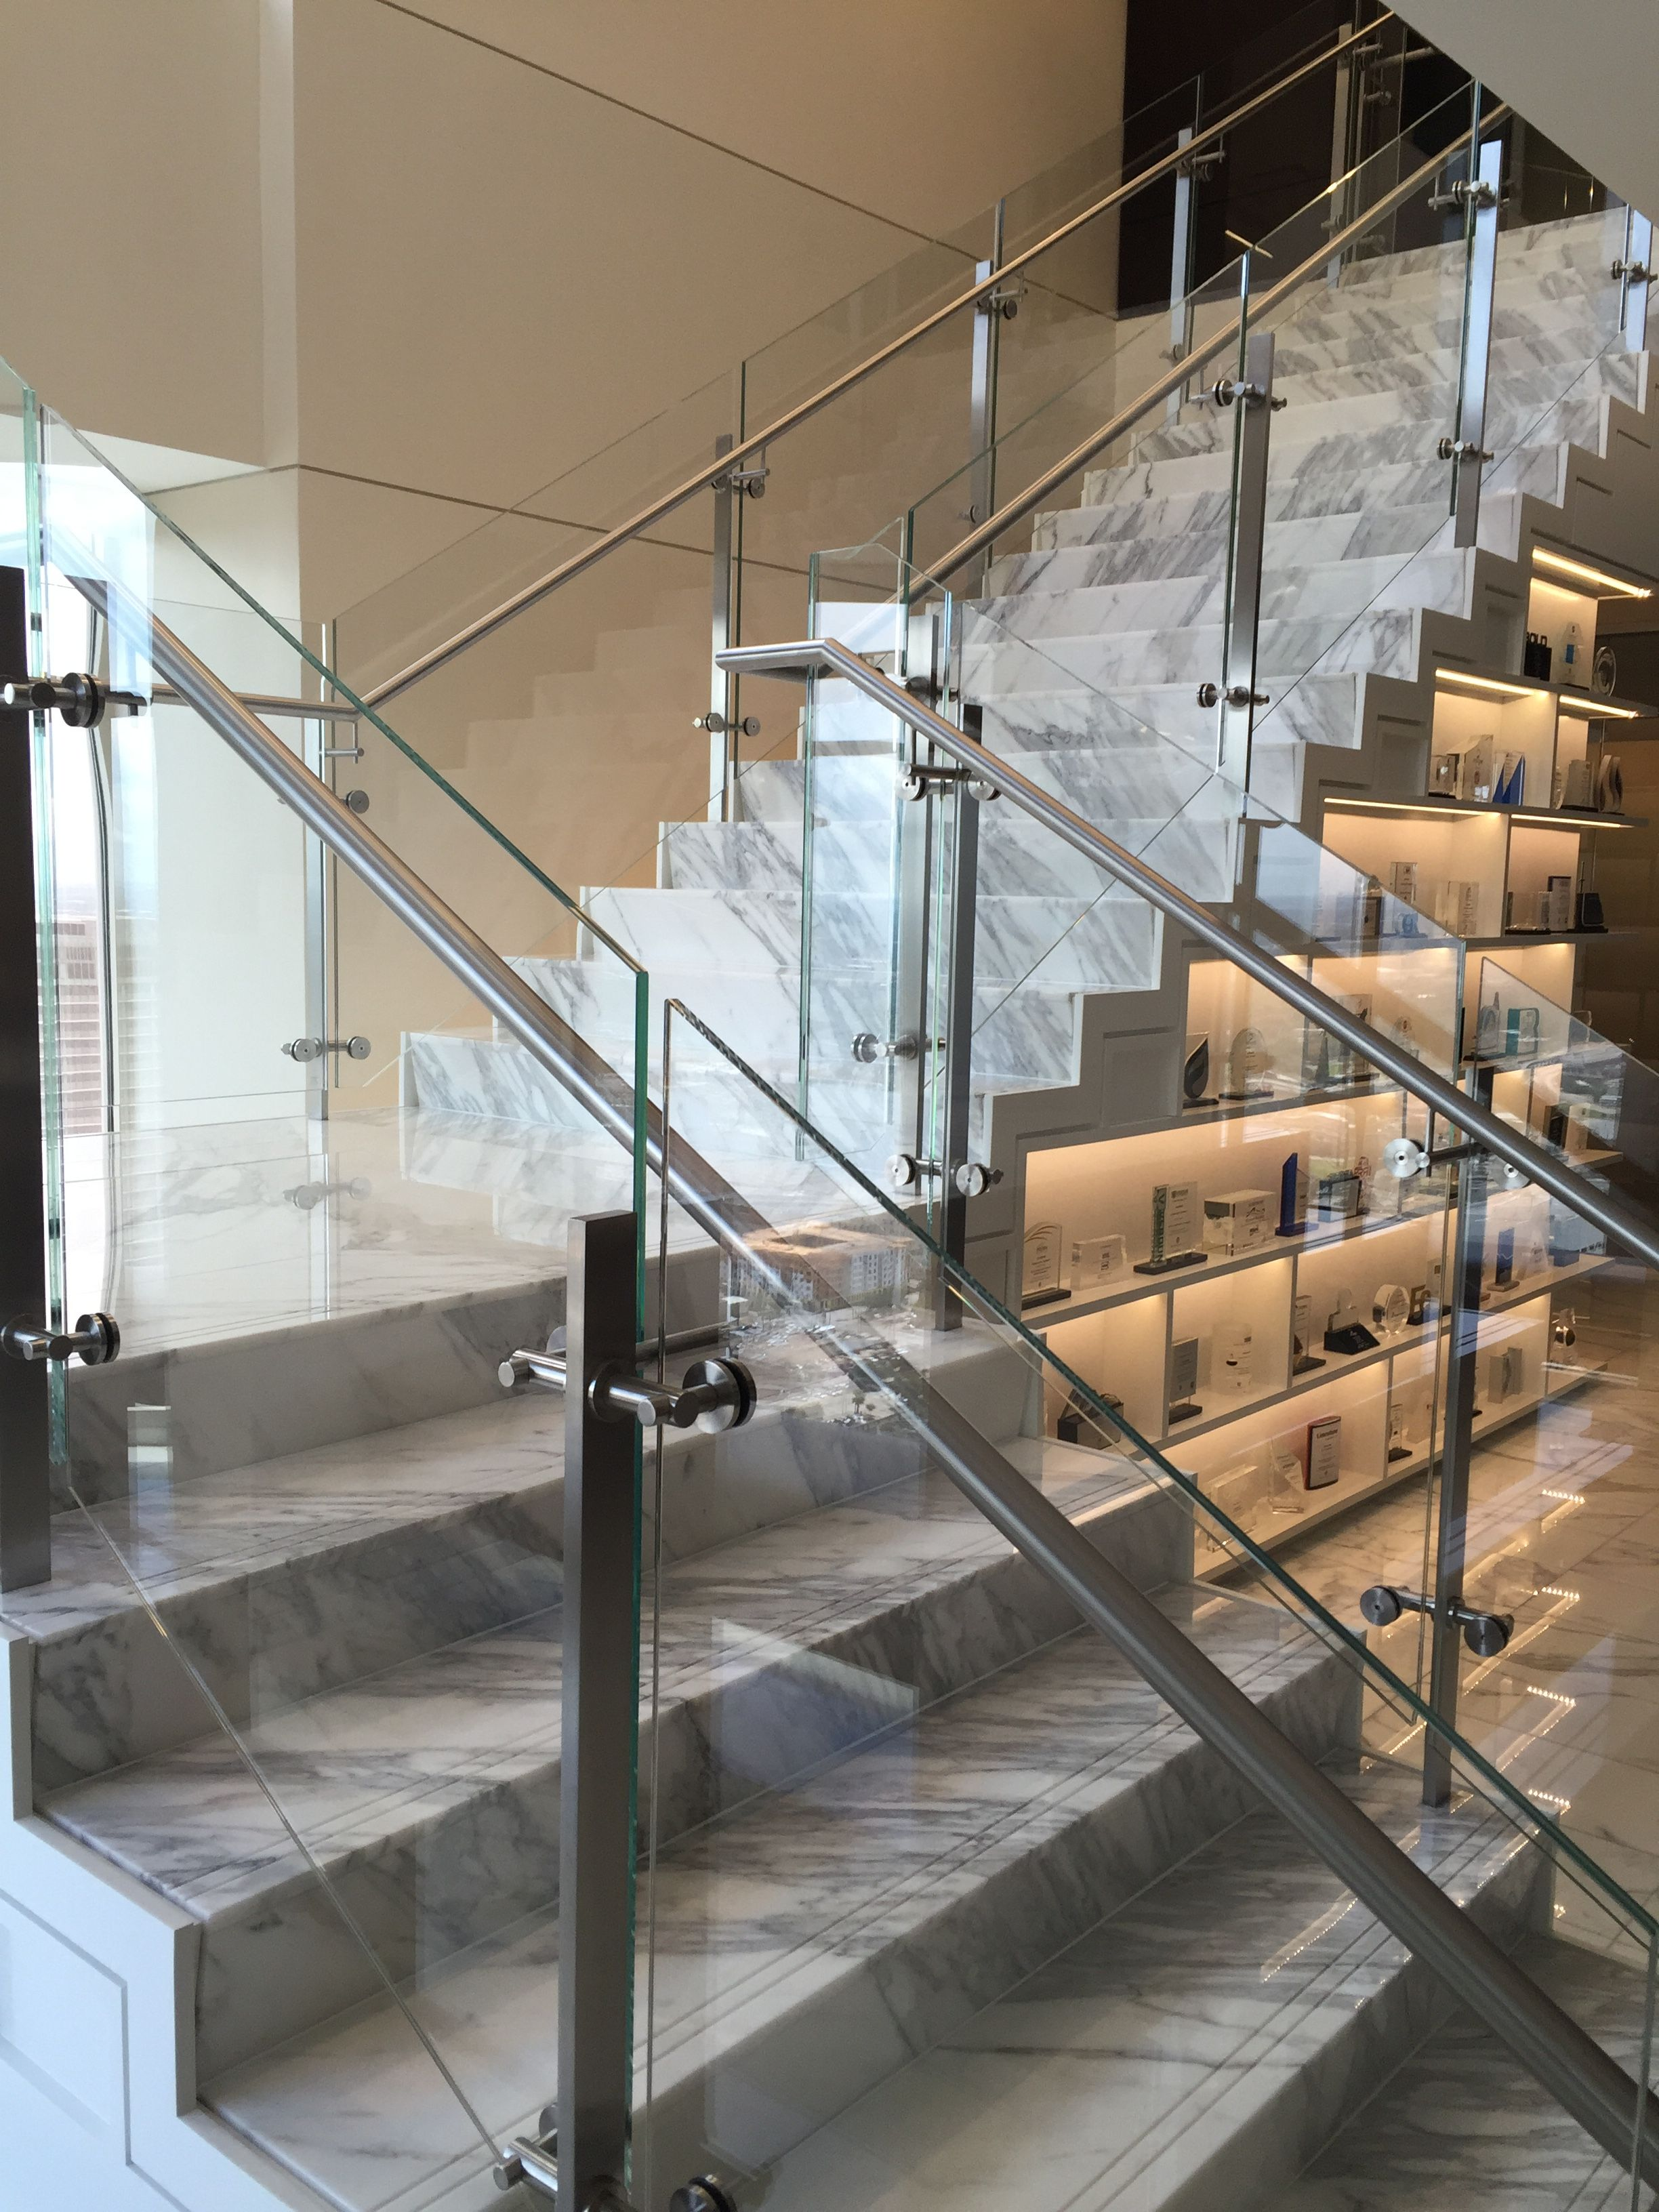 Glass Railing With Stainless Steel Glass Clamps Glass | Wooden Stairs Railing Design With Glass